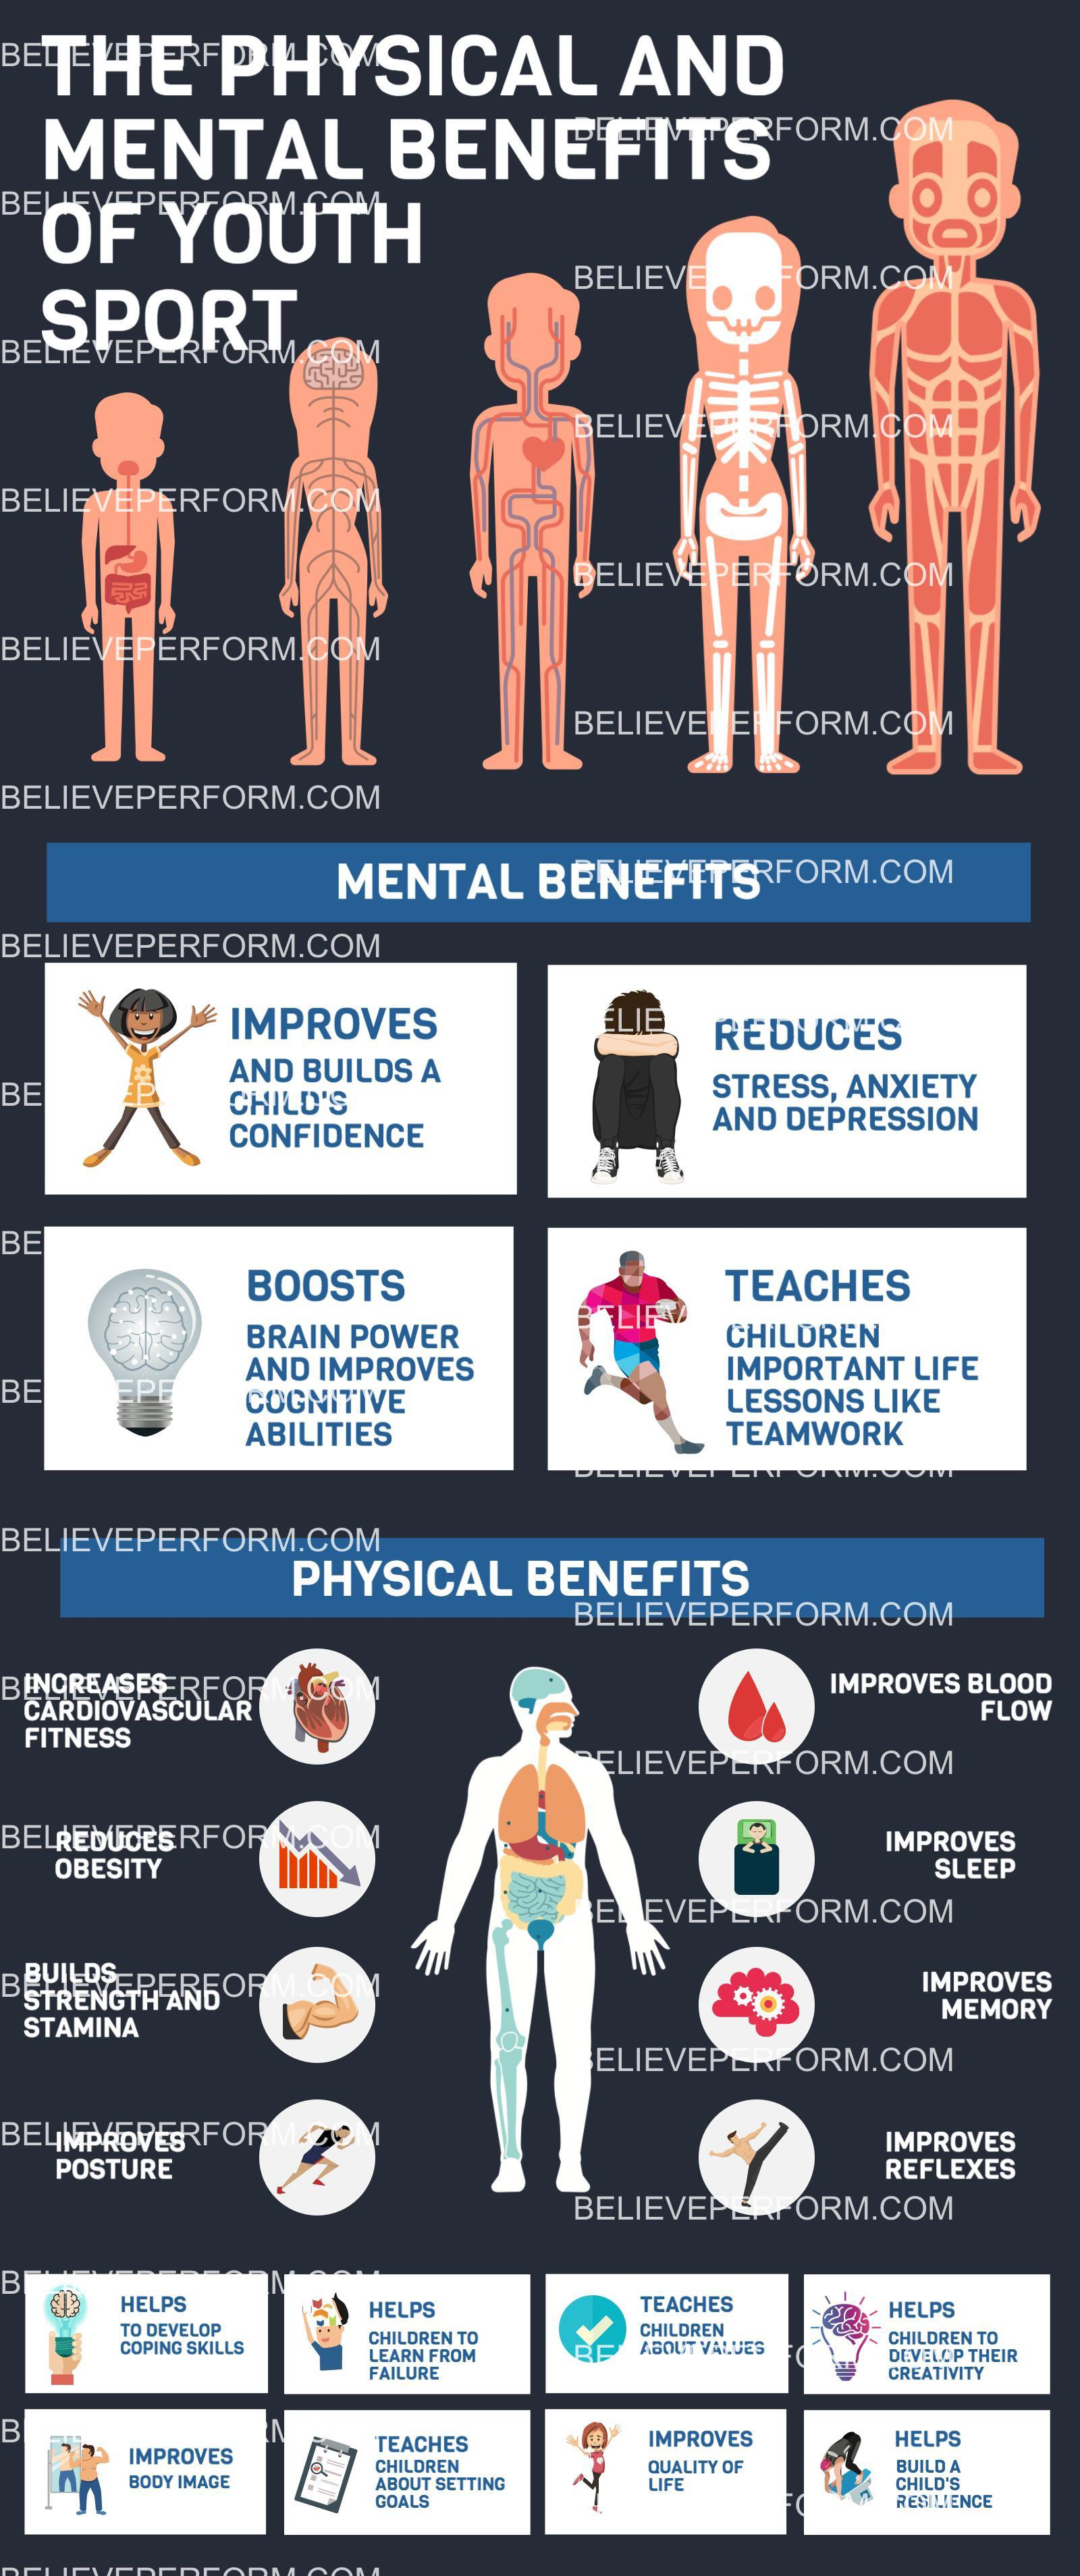 benifits of youth sports Facts: sports activity and children project play collects and distributes data on sport participation and research associated with youth sports and physical activity the above infographic summarizes the benefits that flow to physically active youth, as recognized by the american college of sports medicine.